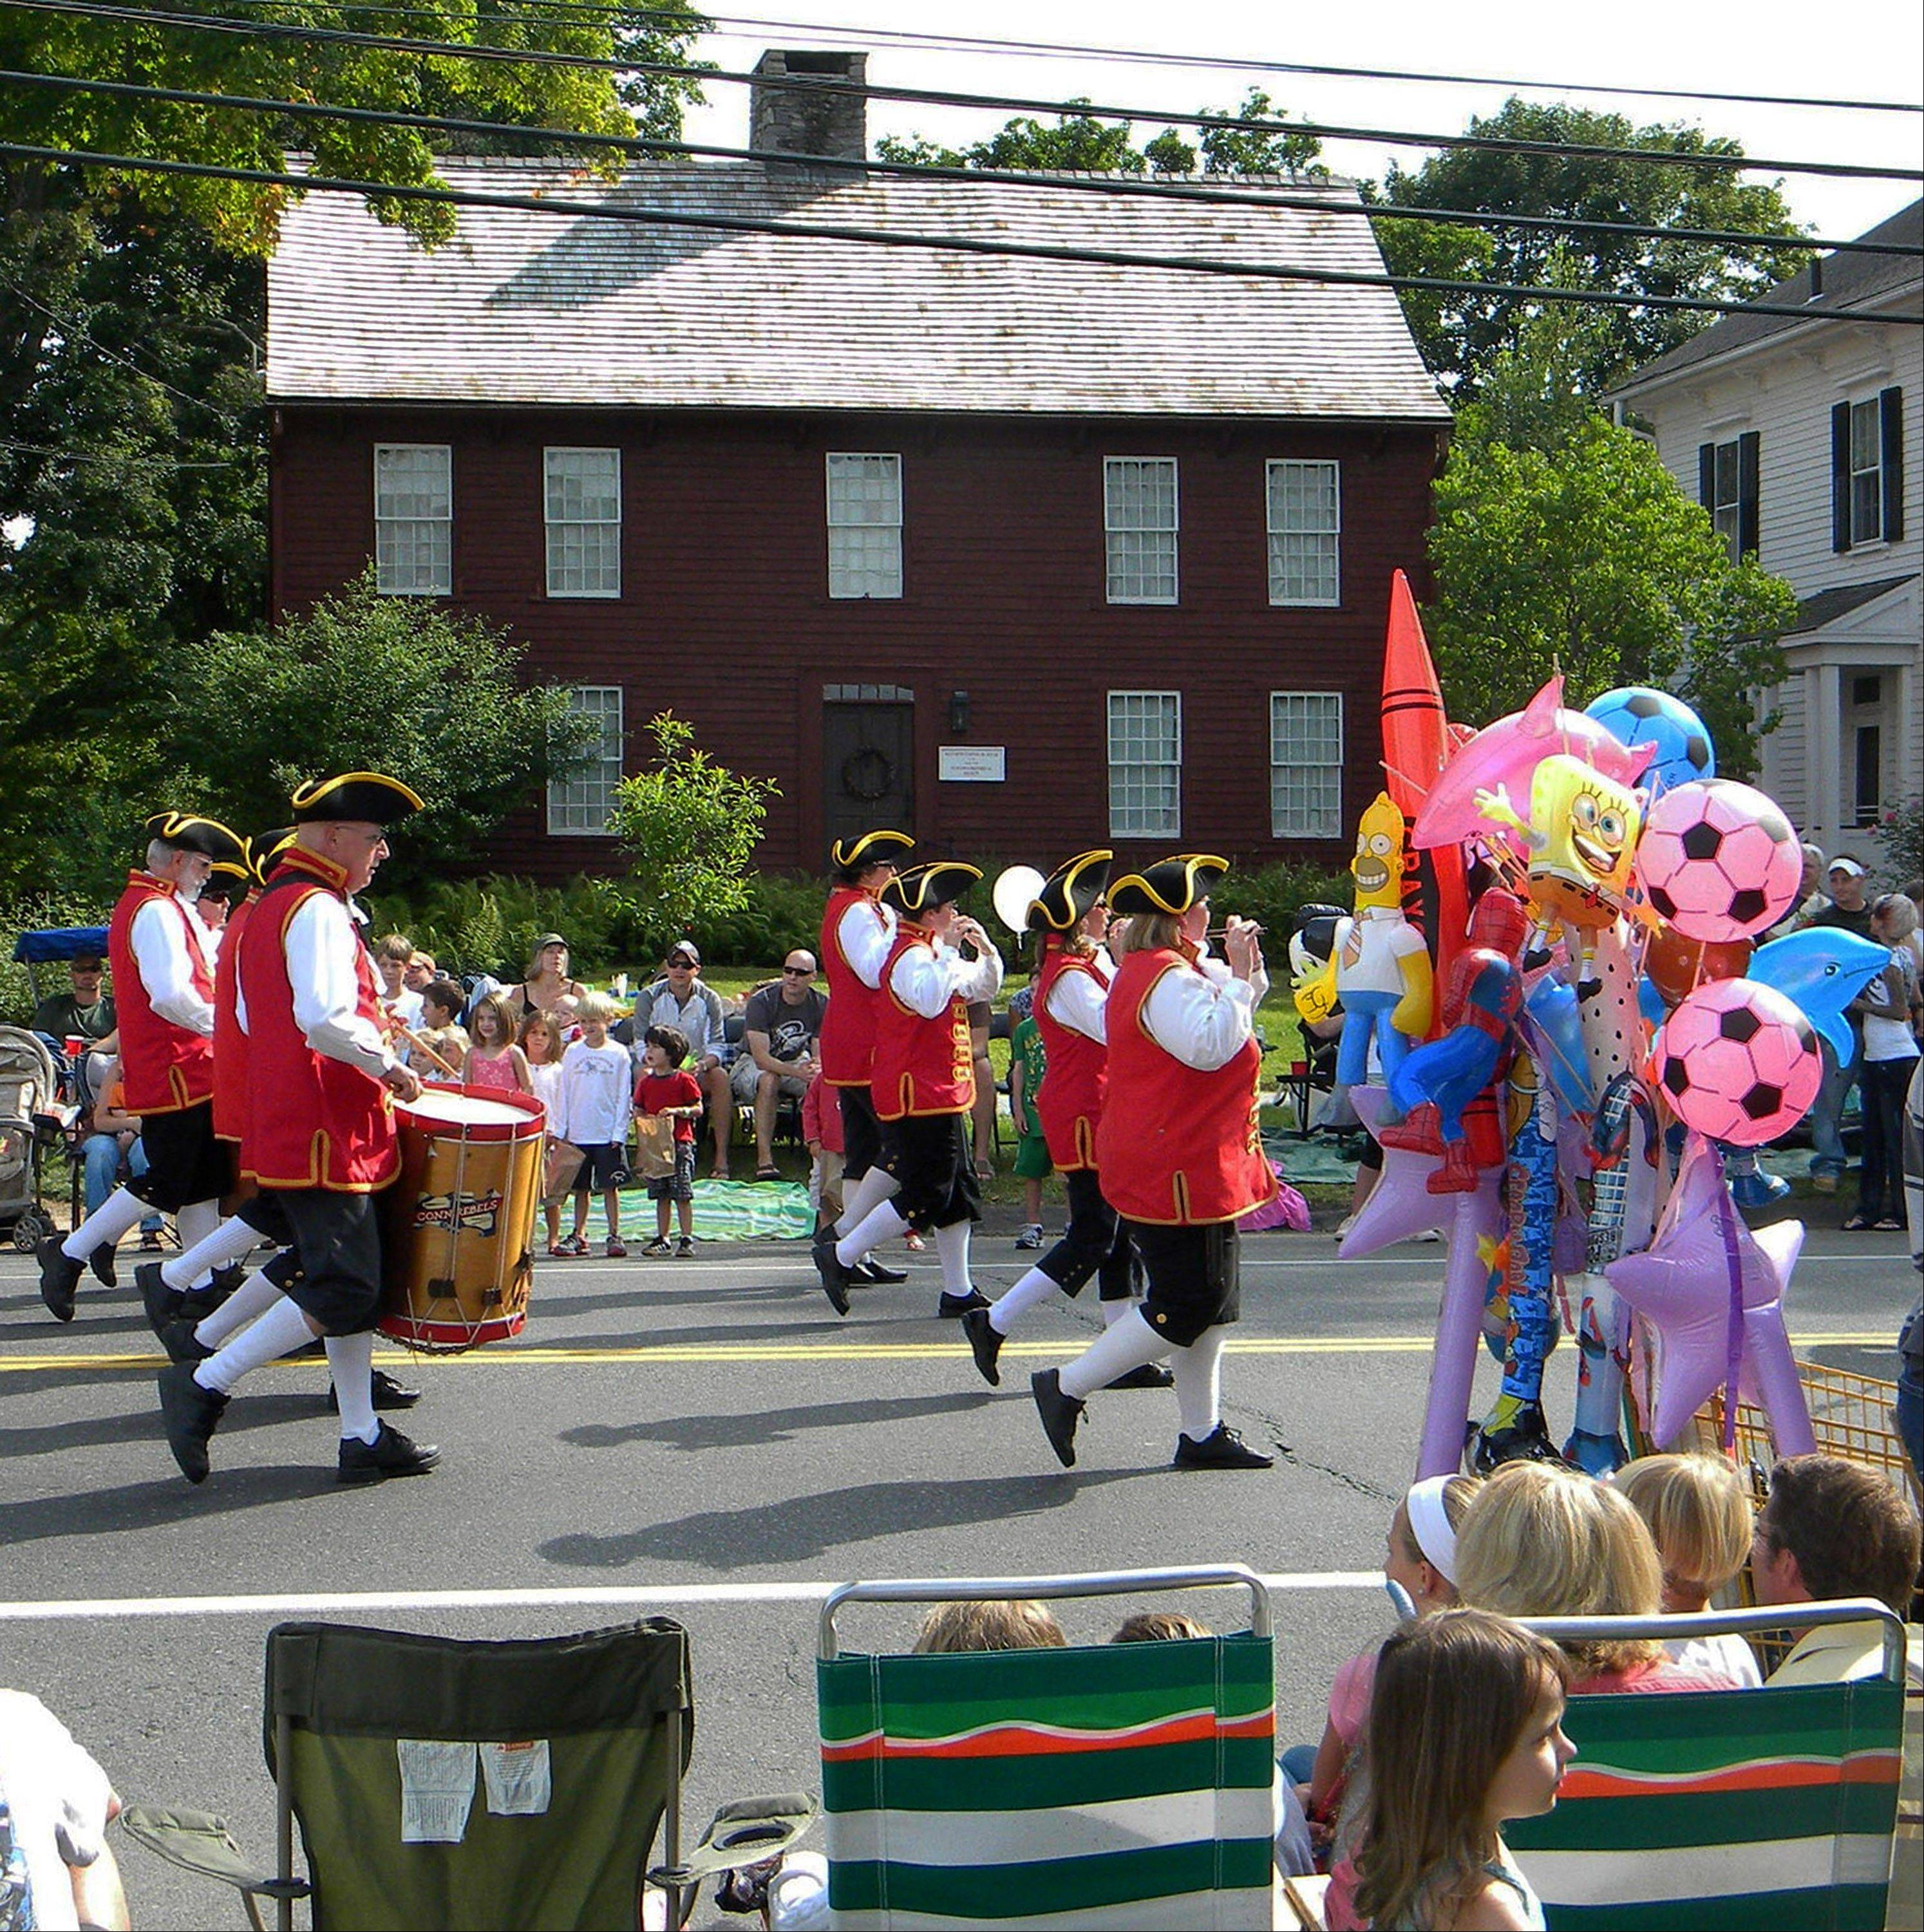 A fife-and-drum band in colonial-era uniforms marches past a souvenir seller and spectators during the Labor Day parade in Newtown, Conn. The parade has been a town fixture since Sept. 3, 1962.